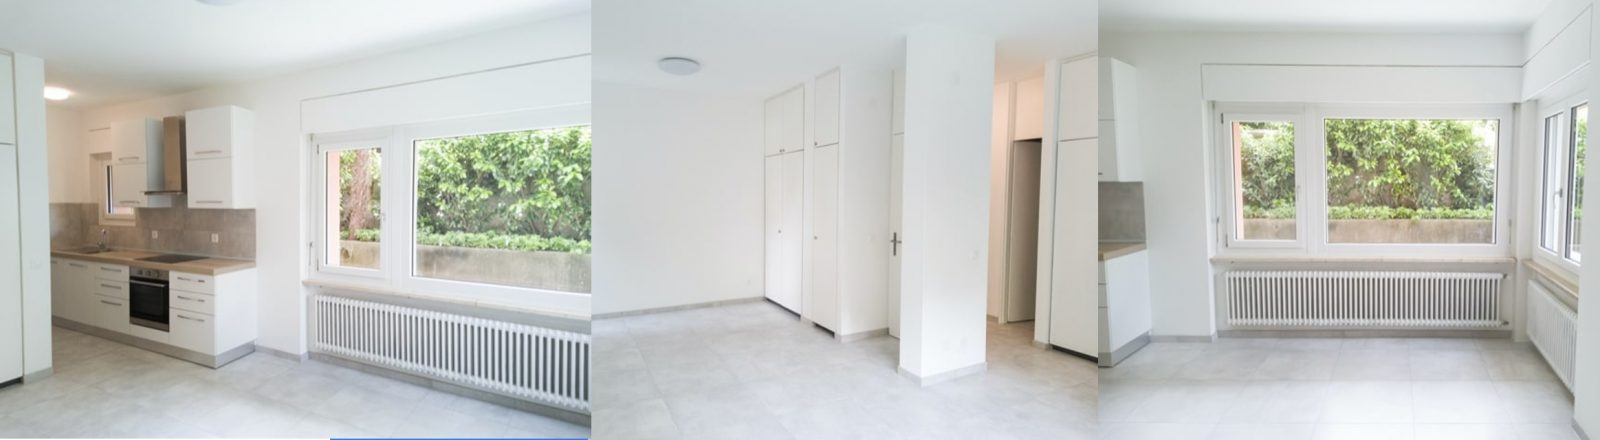 2-rooms in a comfortable and served area #2